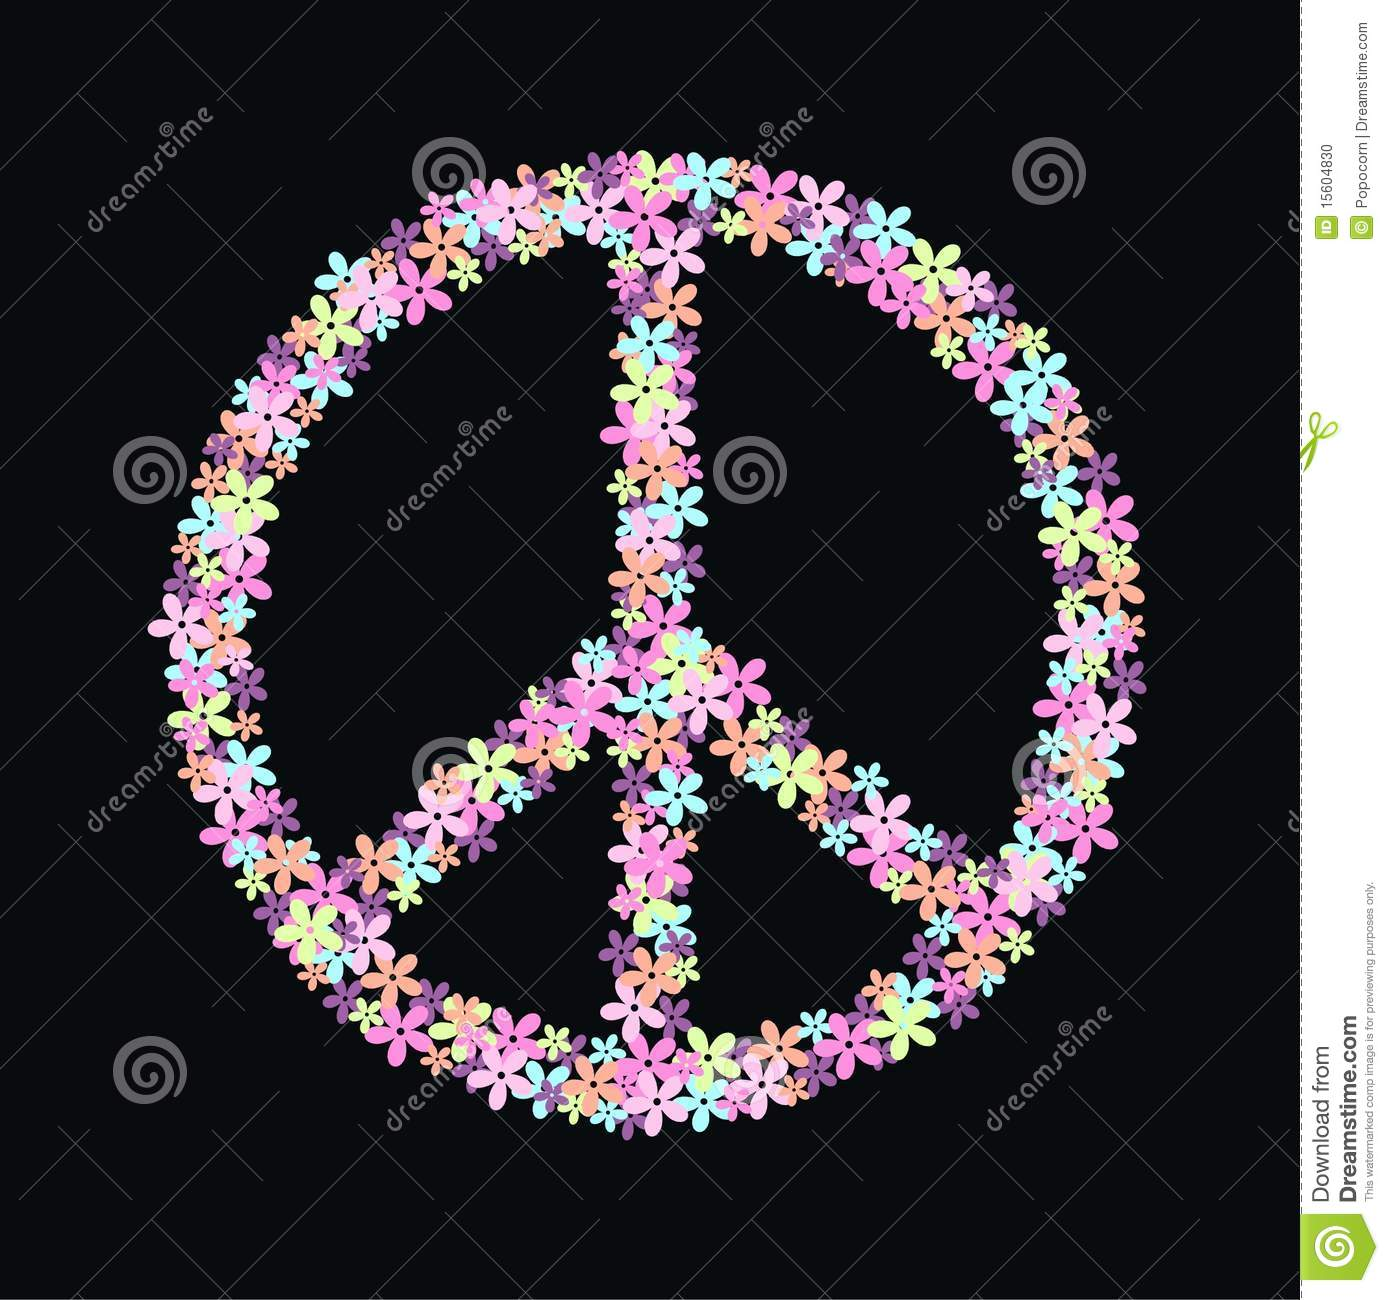 peace symbol of flowers stock photo image 15604830 leopard clip art free leopard clipart pattern